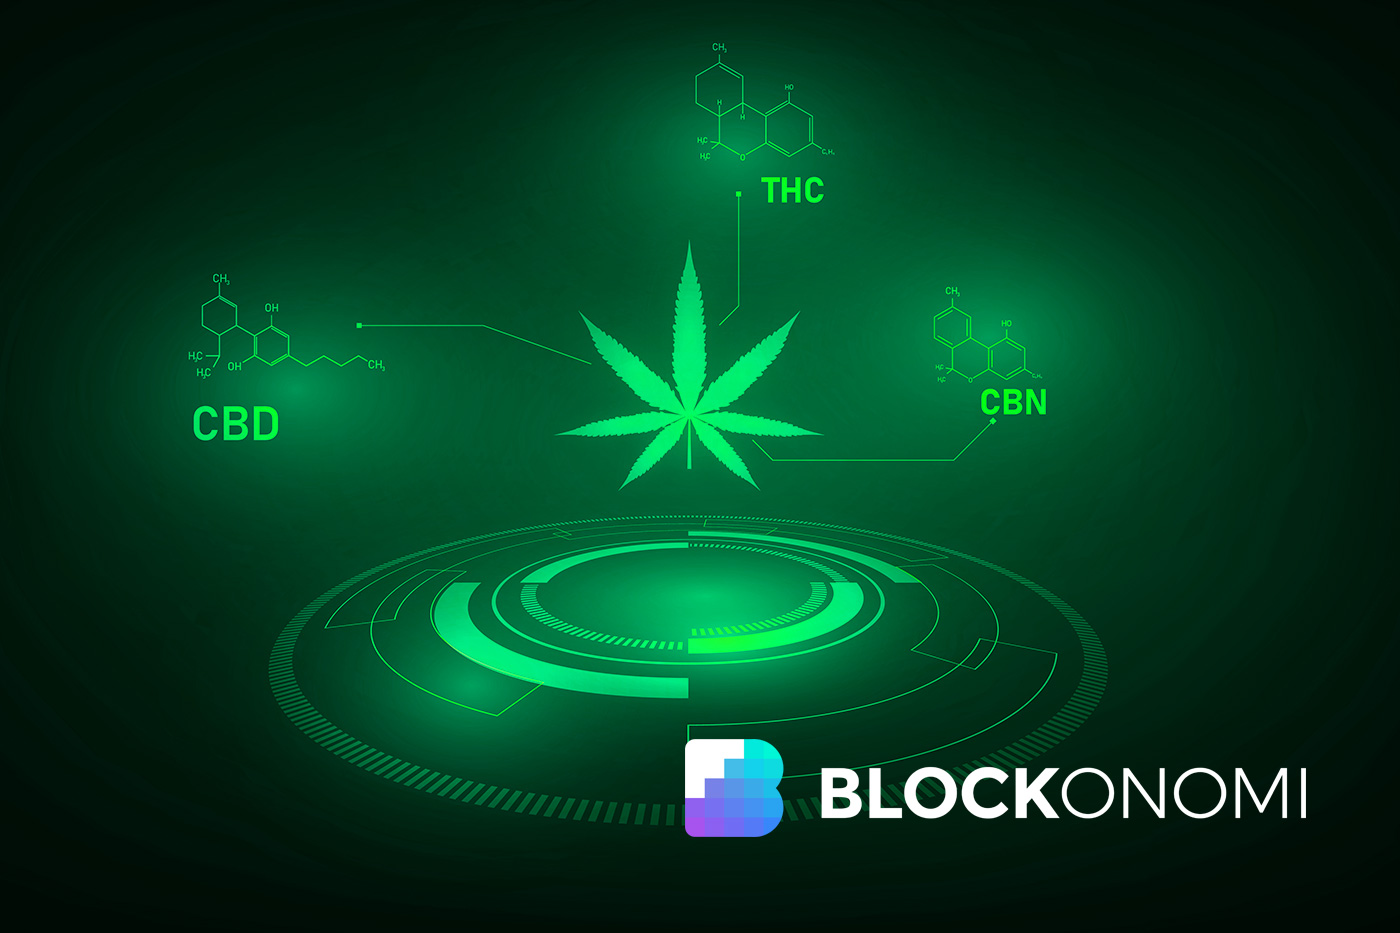 Cryptocurrency & The Cannabis Industry: Two Hot Markets Working Together